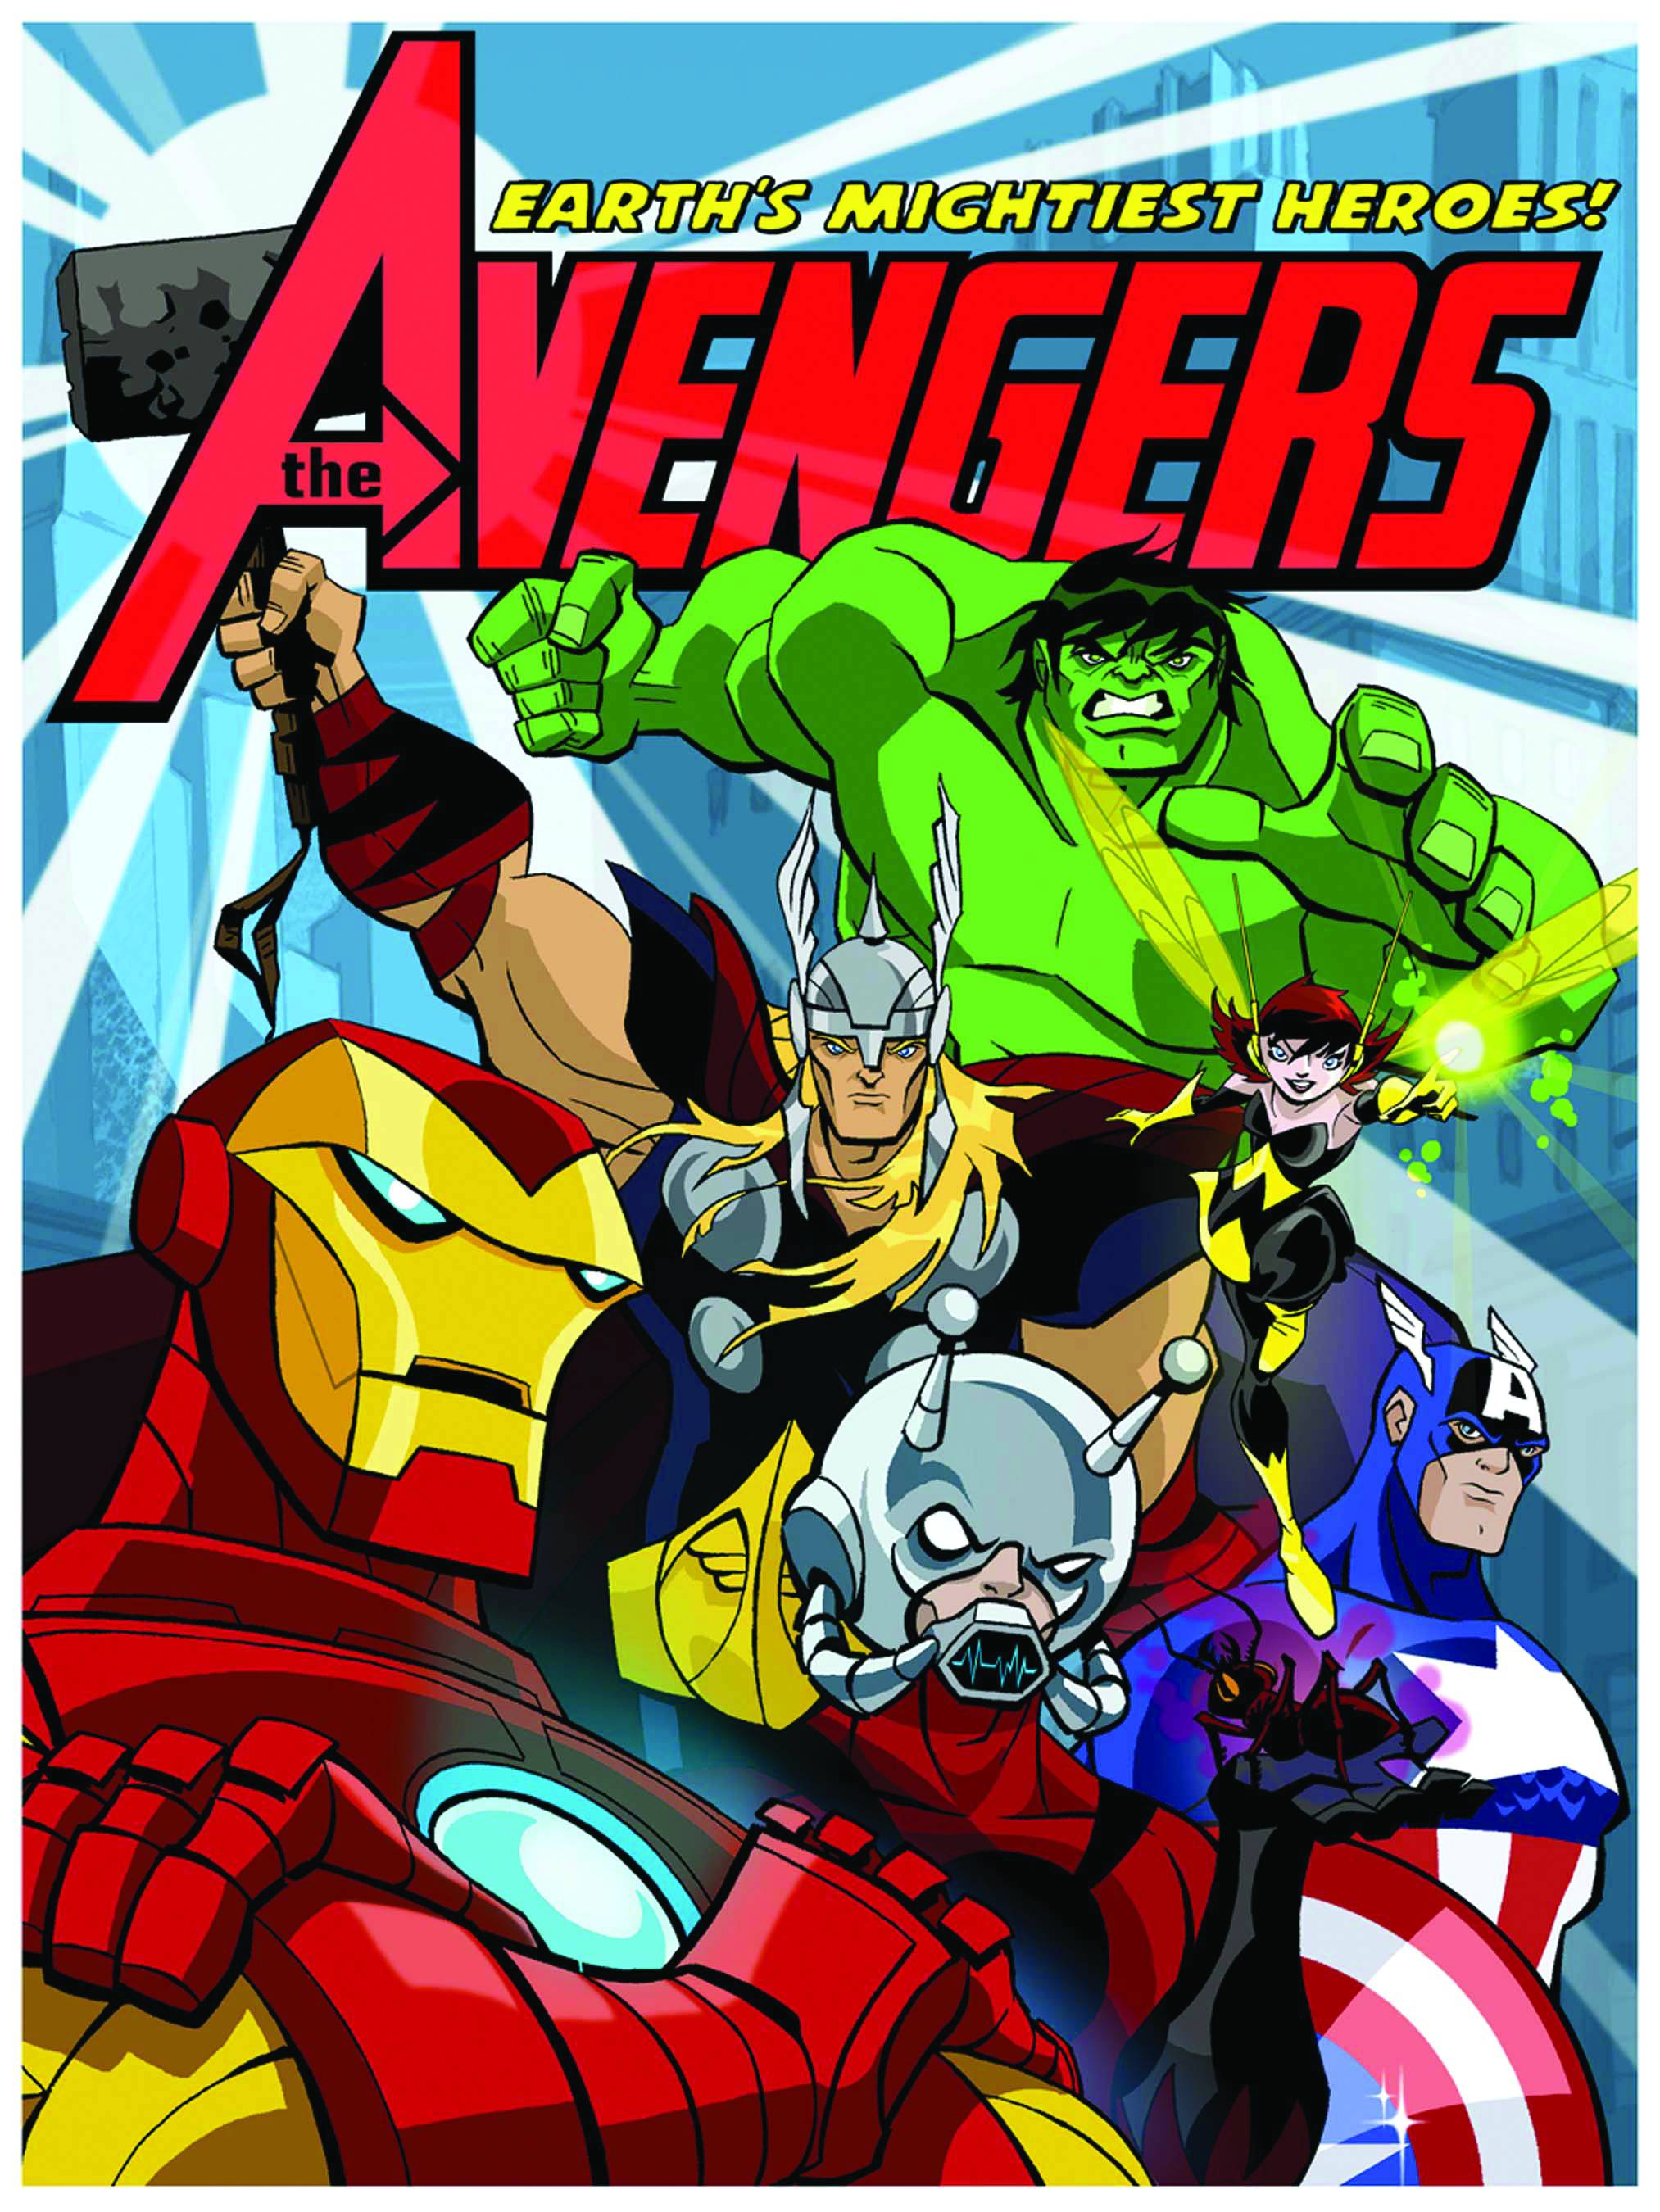 Avengers: Earth's Mightiest Heroes (Animated Series)